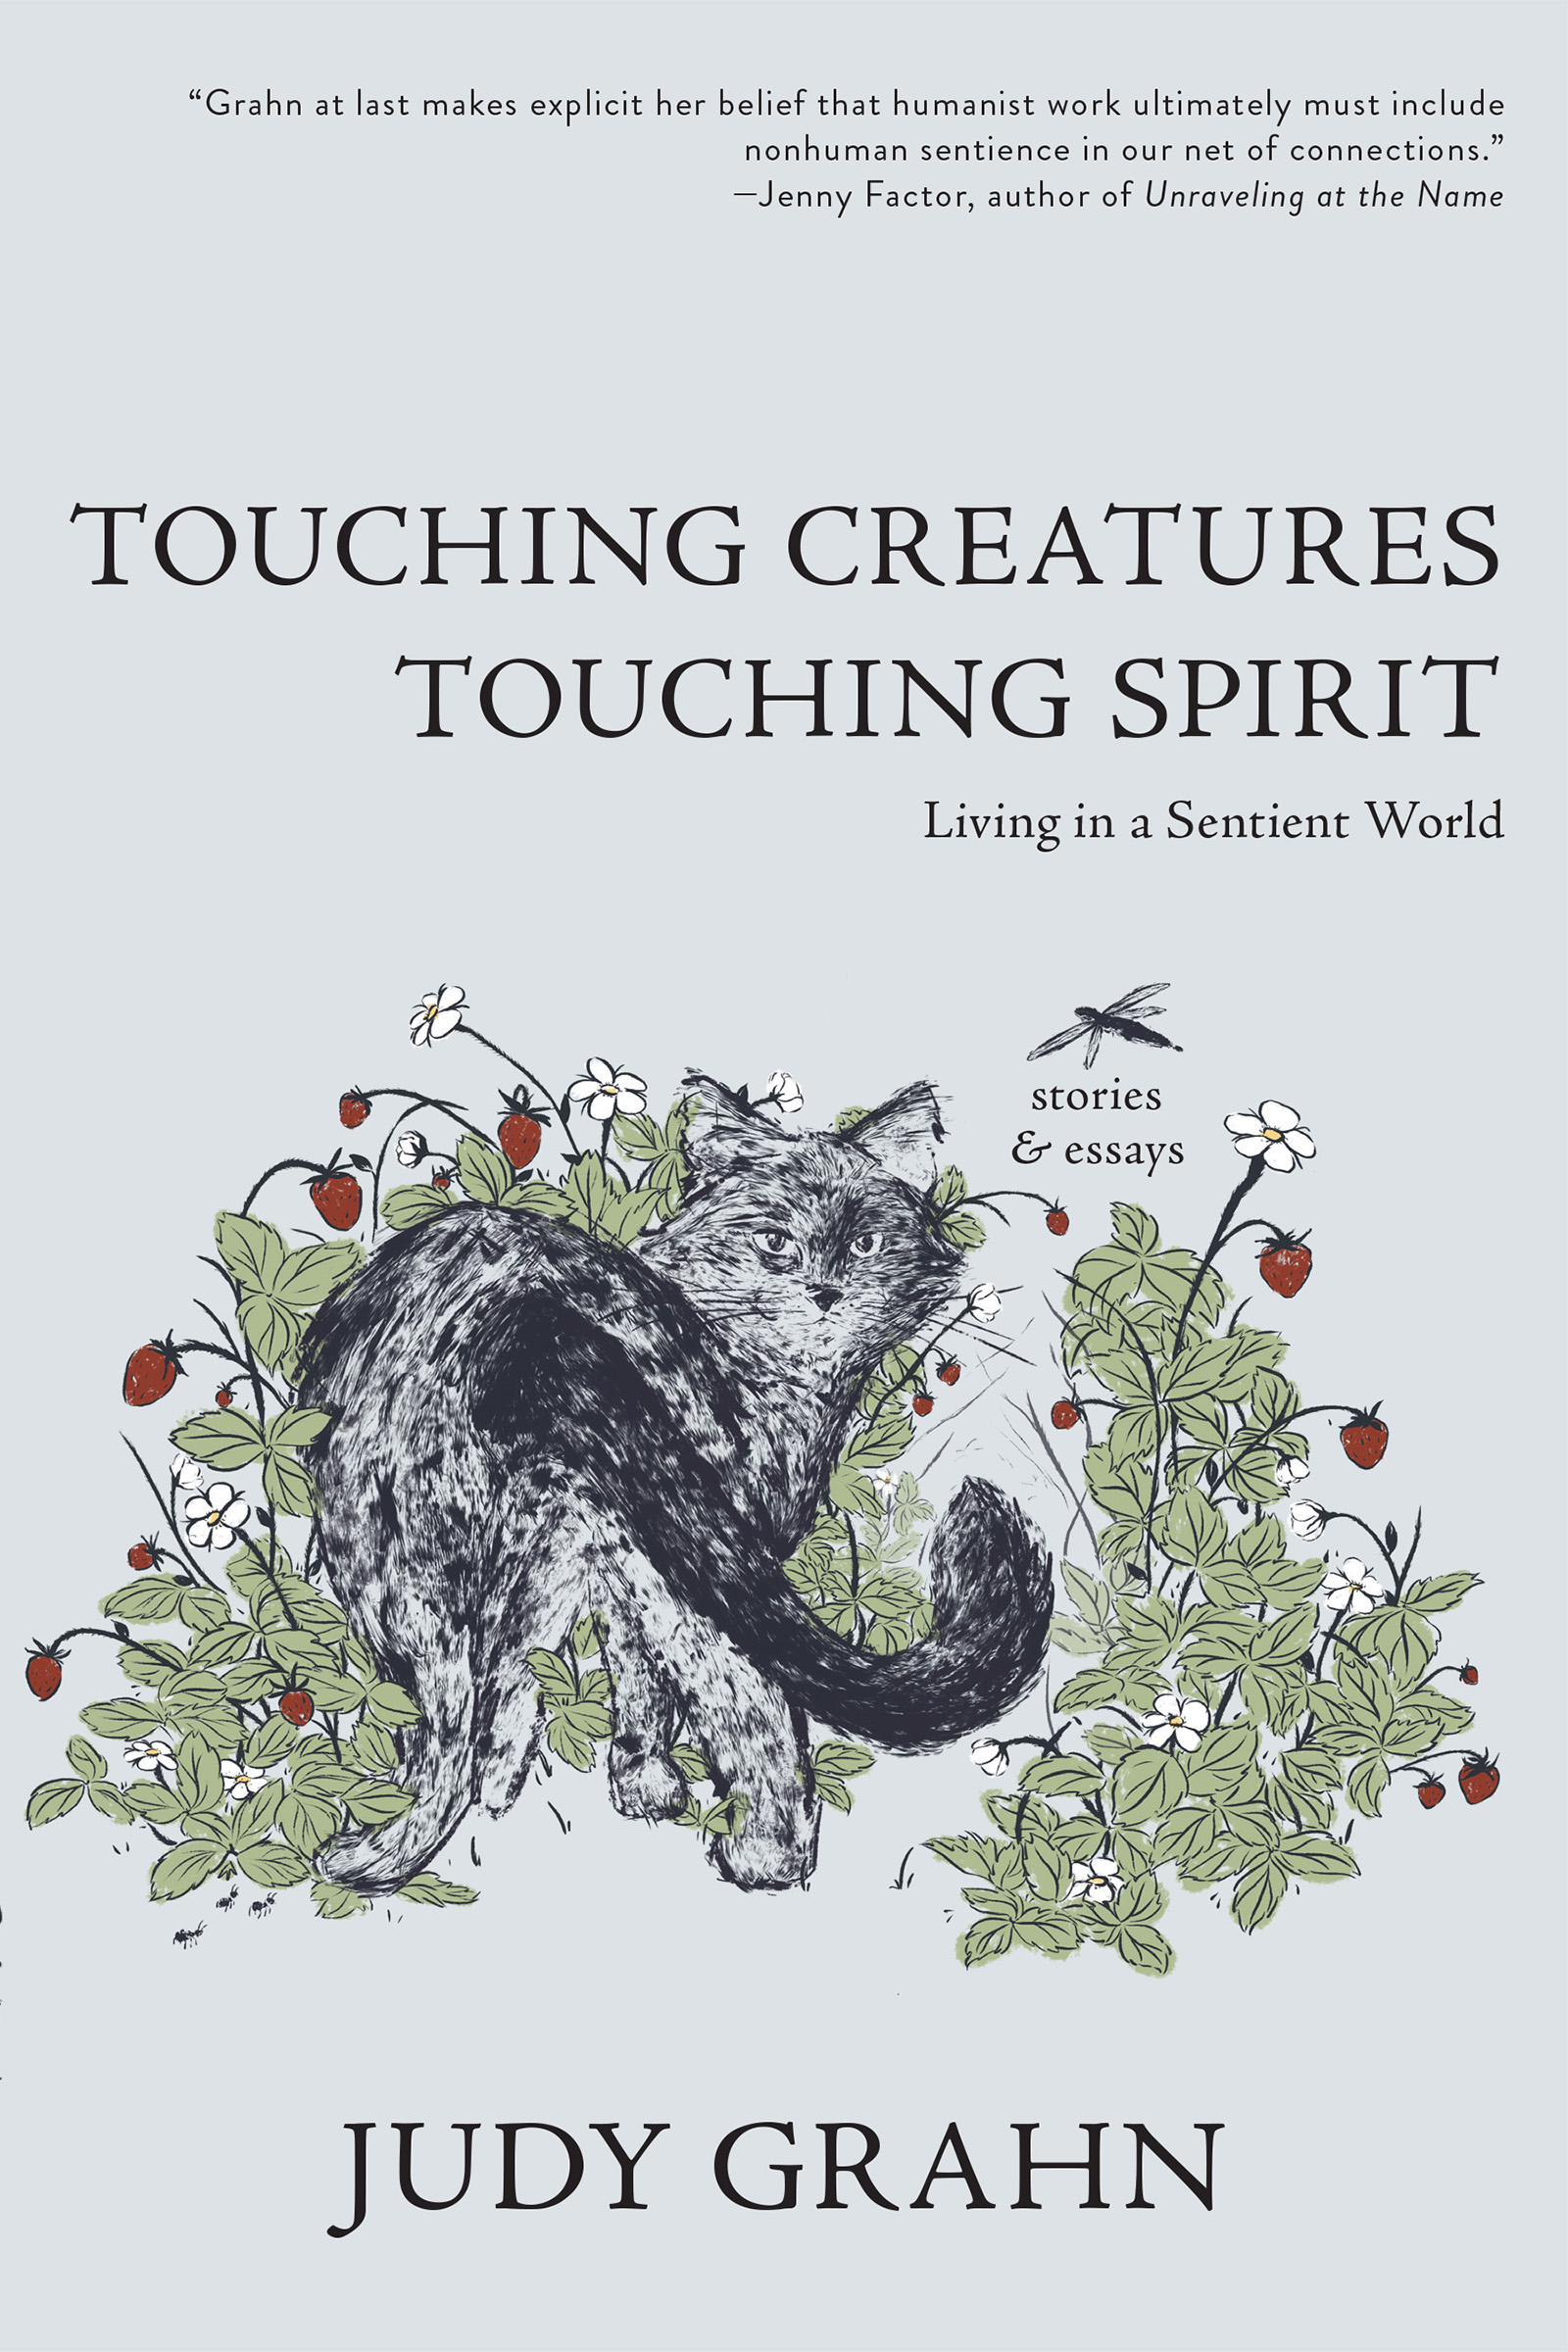 A graphic design of a black cat inside strawberry bush with black text towards the top that reads Touching Creatures Touching Spirit stories and essays by Judy Grahn.